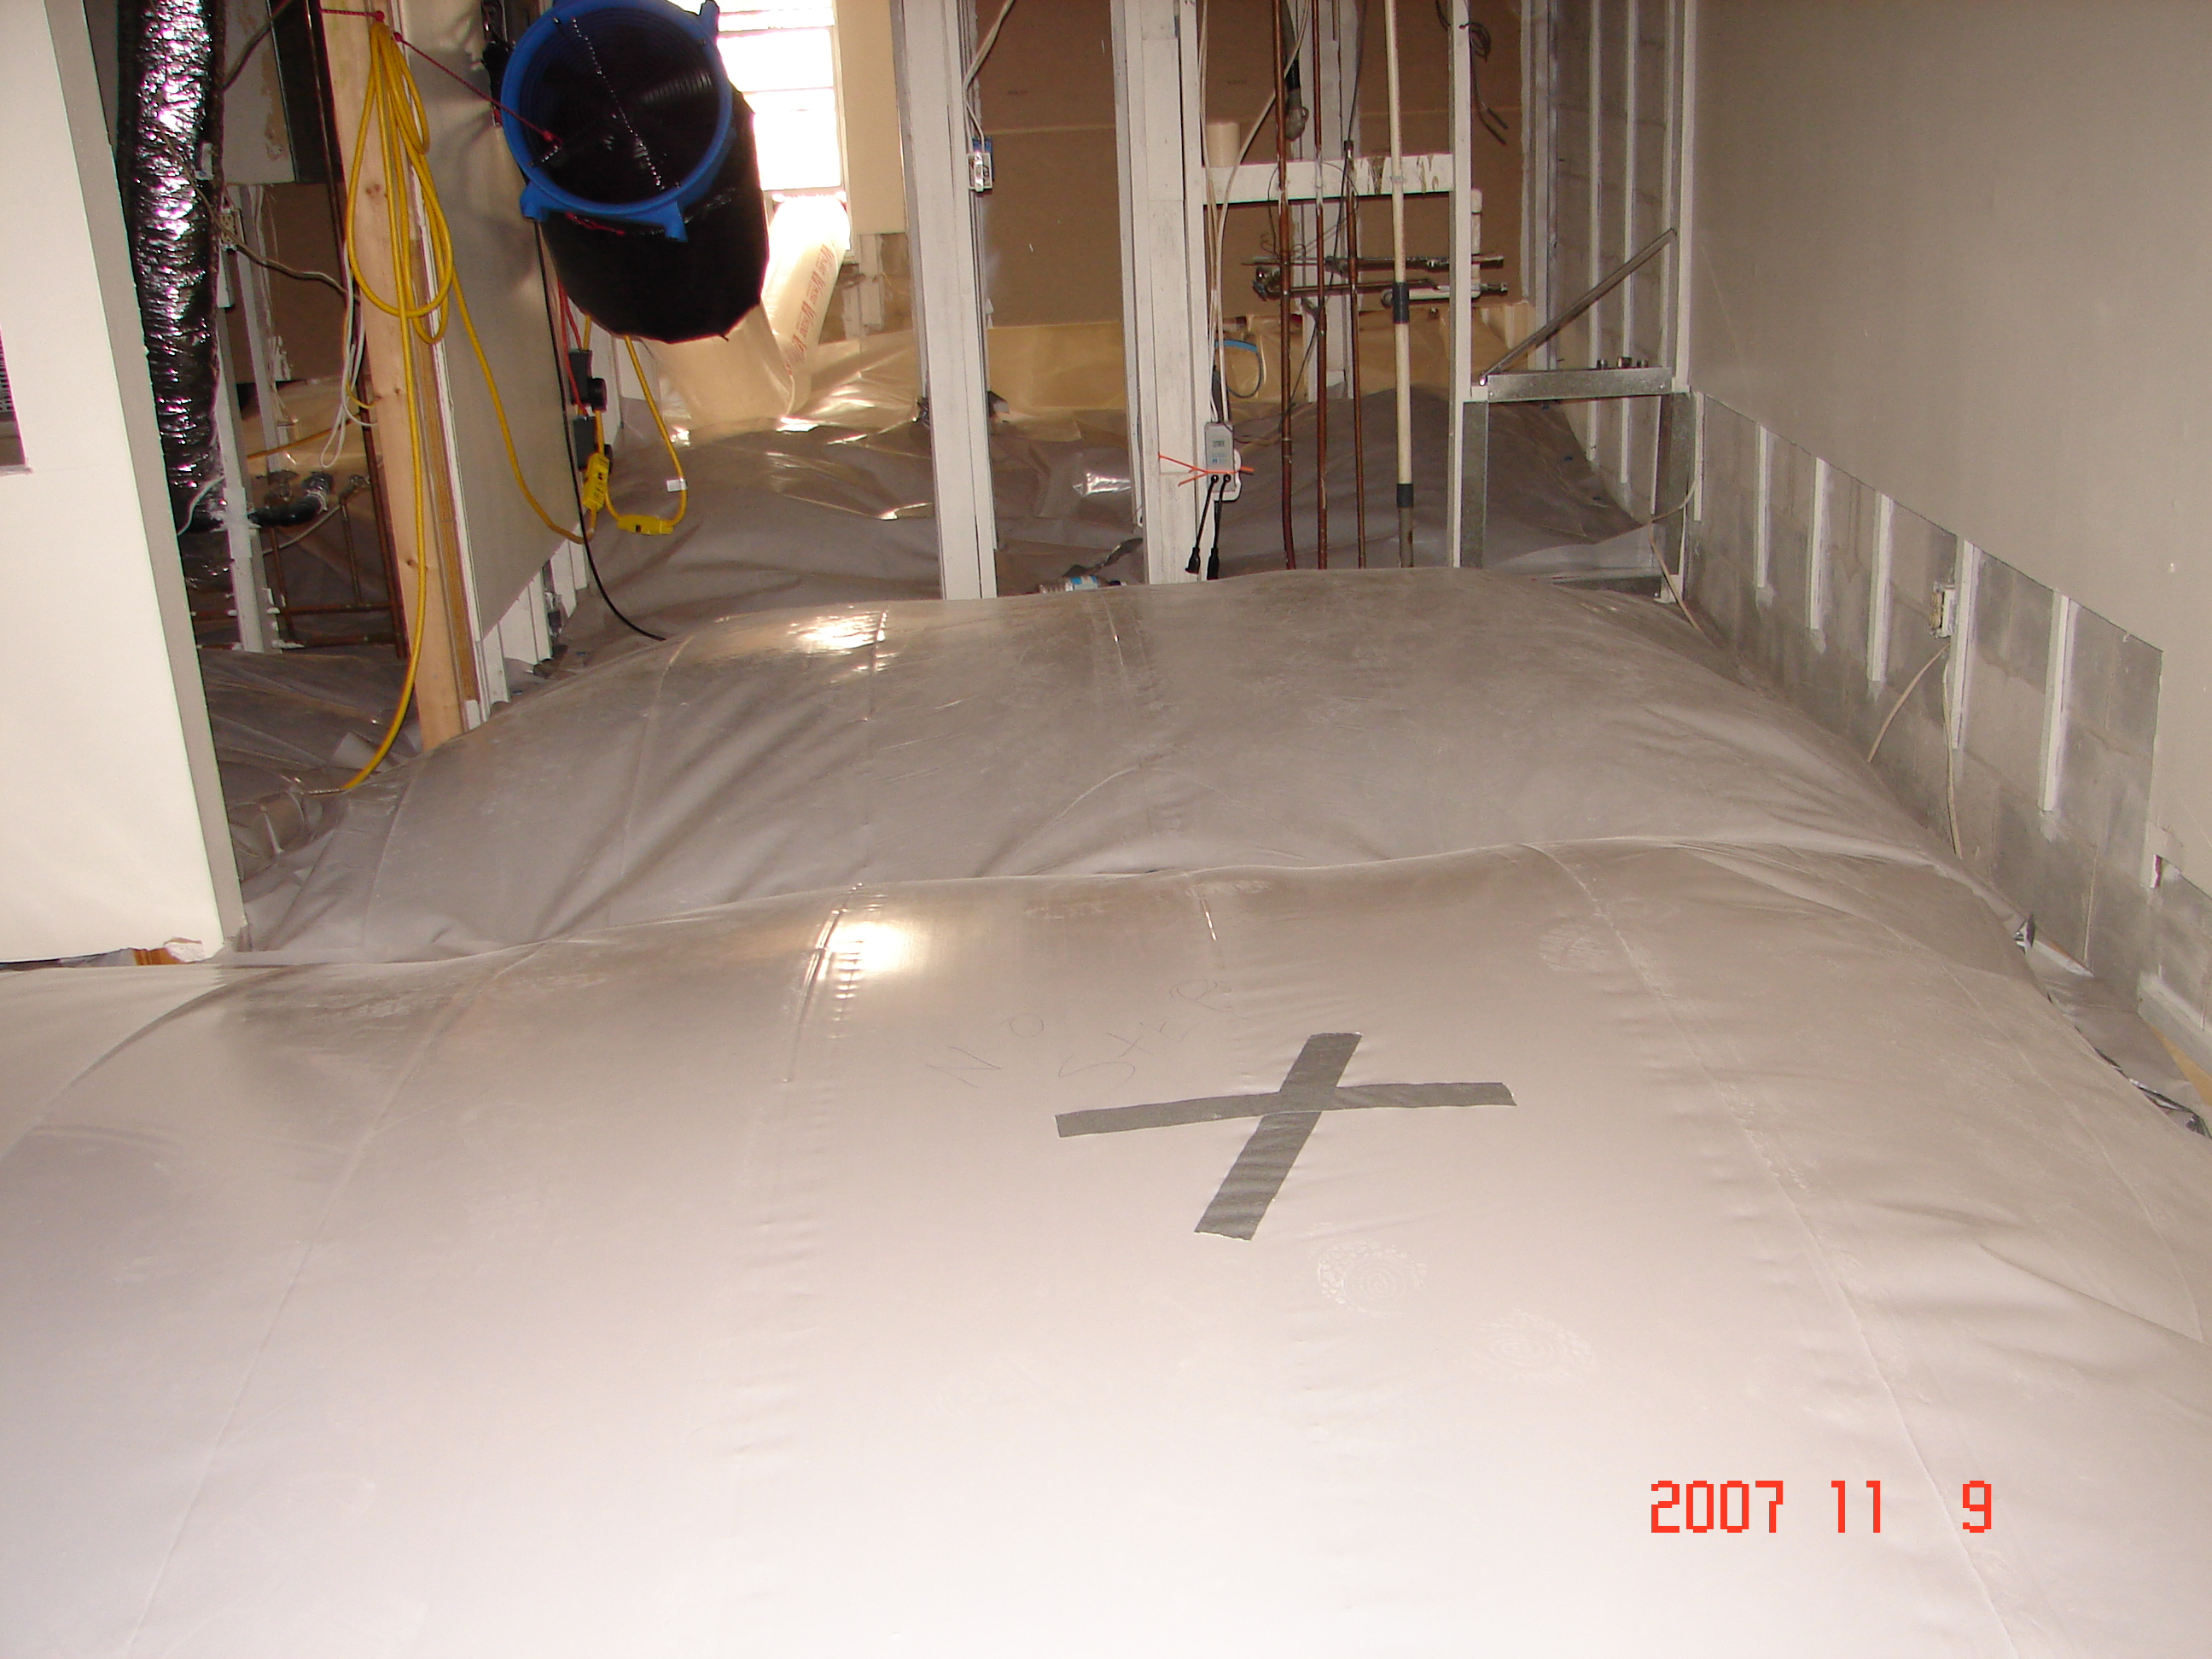 Photo of a particular area to be dried contained by plastic tenting